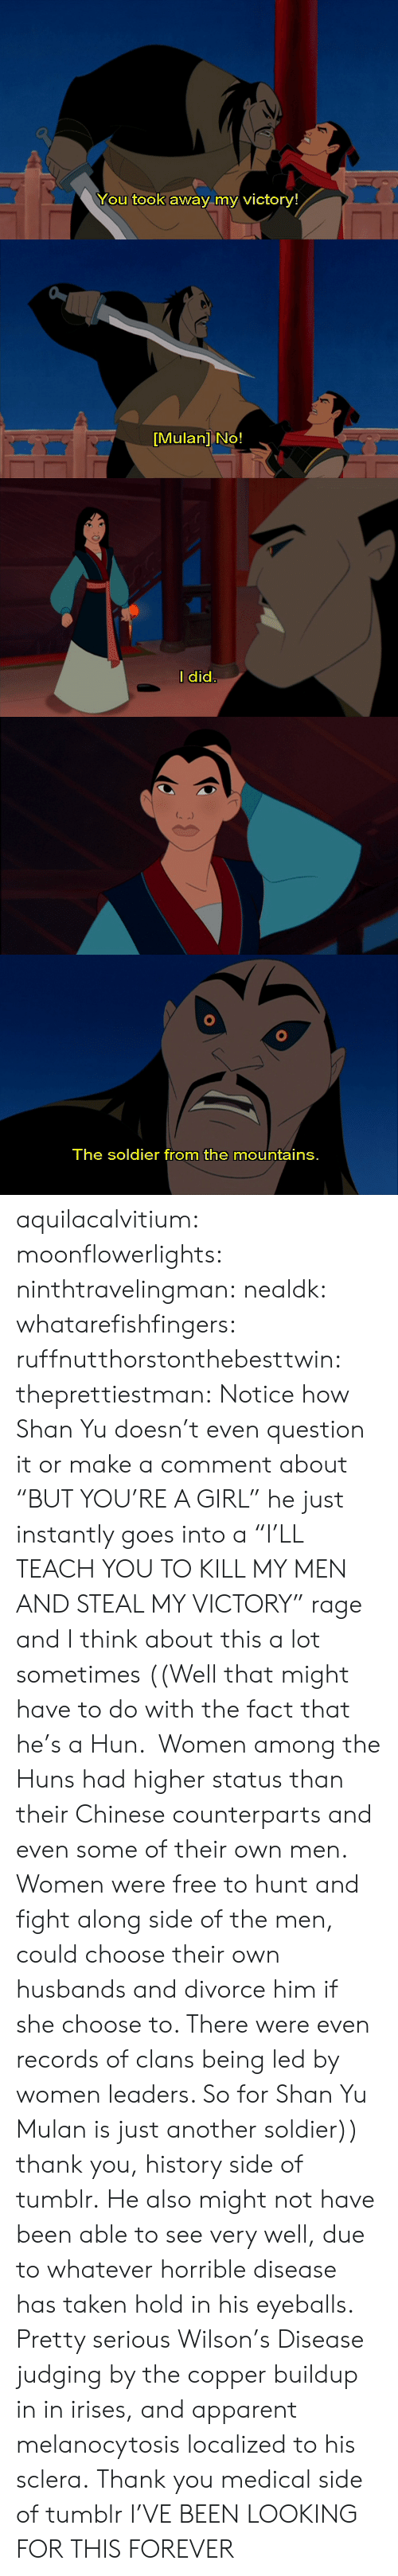 "Mulan: You took away my victory!   [Mulan] No!   l did   The soldier from the mountains. aquilacalvitium: moonflowerlights:  ninthtravelingman:  nealdk:  whatarefishfingers:  ruffnutthorstonthebesttwin:  theprettiestman:  Notice how Shan Yu doesn't even question it or make a comment about ""BUT YOU'RE A GIRL"" he just instantly goes into a ""I'LL TEACH YOU TO KILL MY MEN AND STEAL MY VICTORY"" rage and I think about this a lot sometimes  ((Well that might have to do with the fact that he's a Hun.  Women among the Huns had higher status than their Chinese counterparts and even some of their own men. Women were free to hunt and fight along side of the men, could choose their own husbands and divorce him if she choose to. There were even records of clans being led by women leaders. So for Shan Yu Mulan is just another soldier))  thank you, history side of tumblr.  He also might not have been able to see very well, due to whatever horrible disease has taken hold in his eyeballs.  Pretty serious Wilson's Disease judging by the copper buildup in in irises, and apparent melanocytosis localized to his sclera.  Thank you medical side of tumblr   I'VE BEEN LOOKING FOR THIS FOREVER"